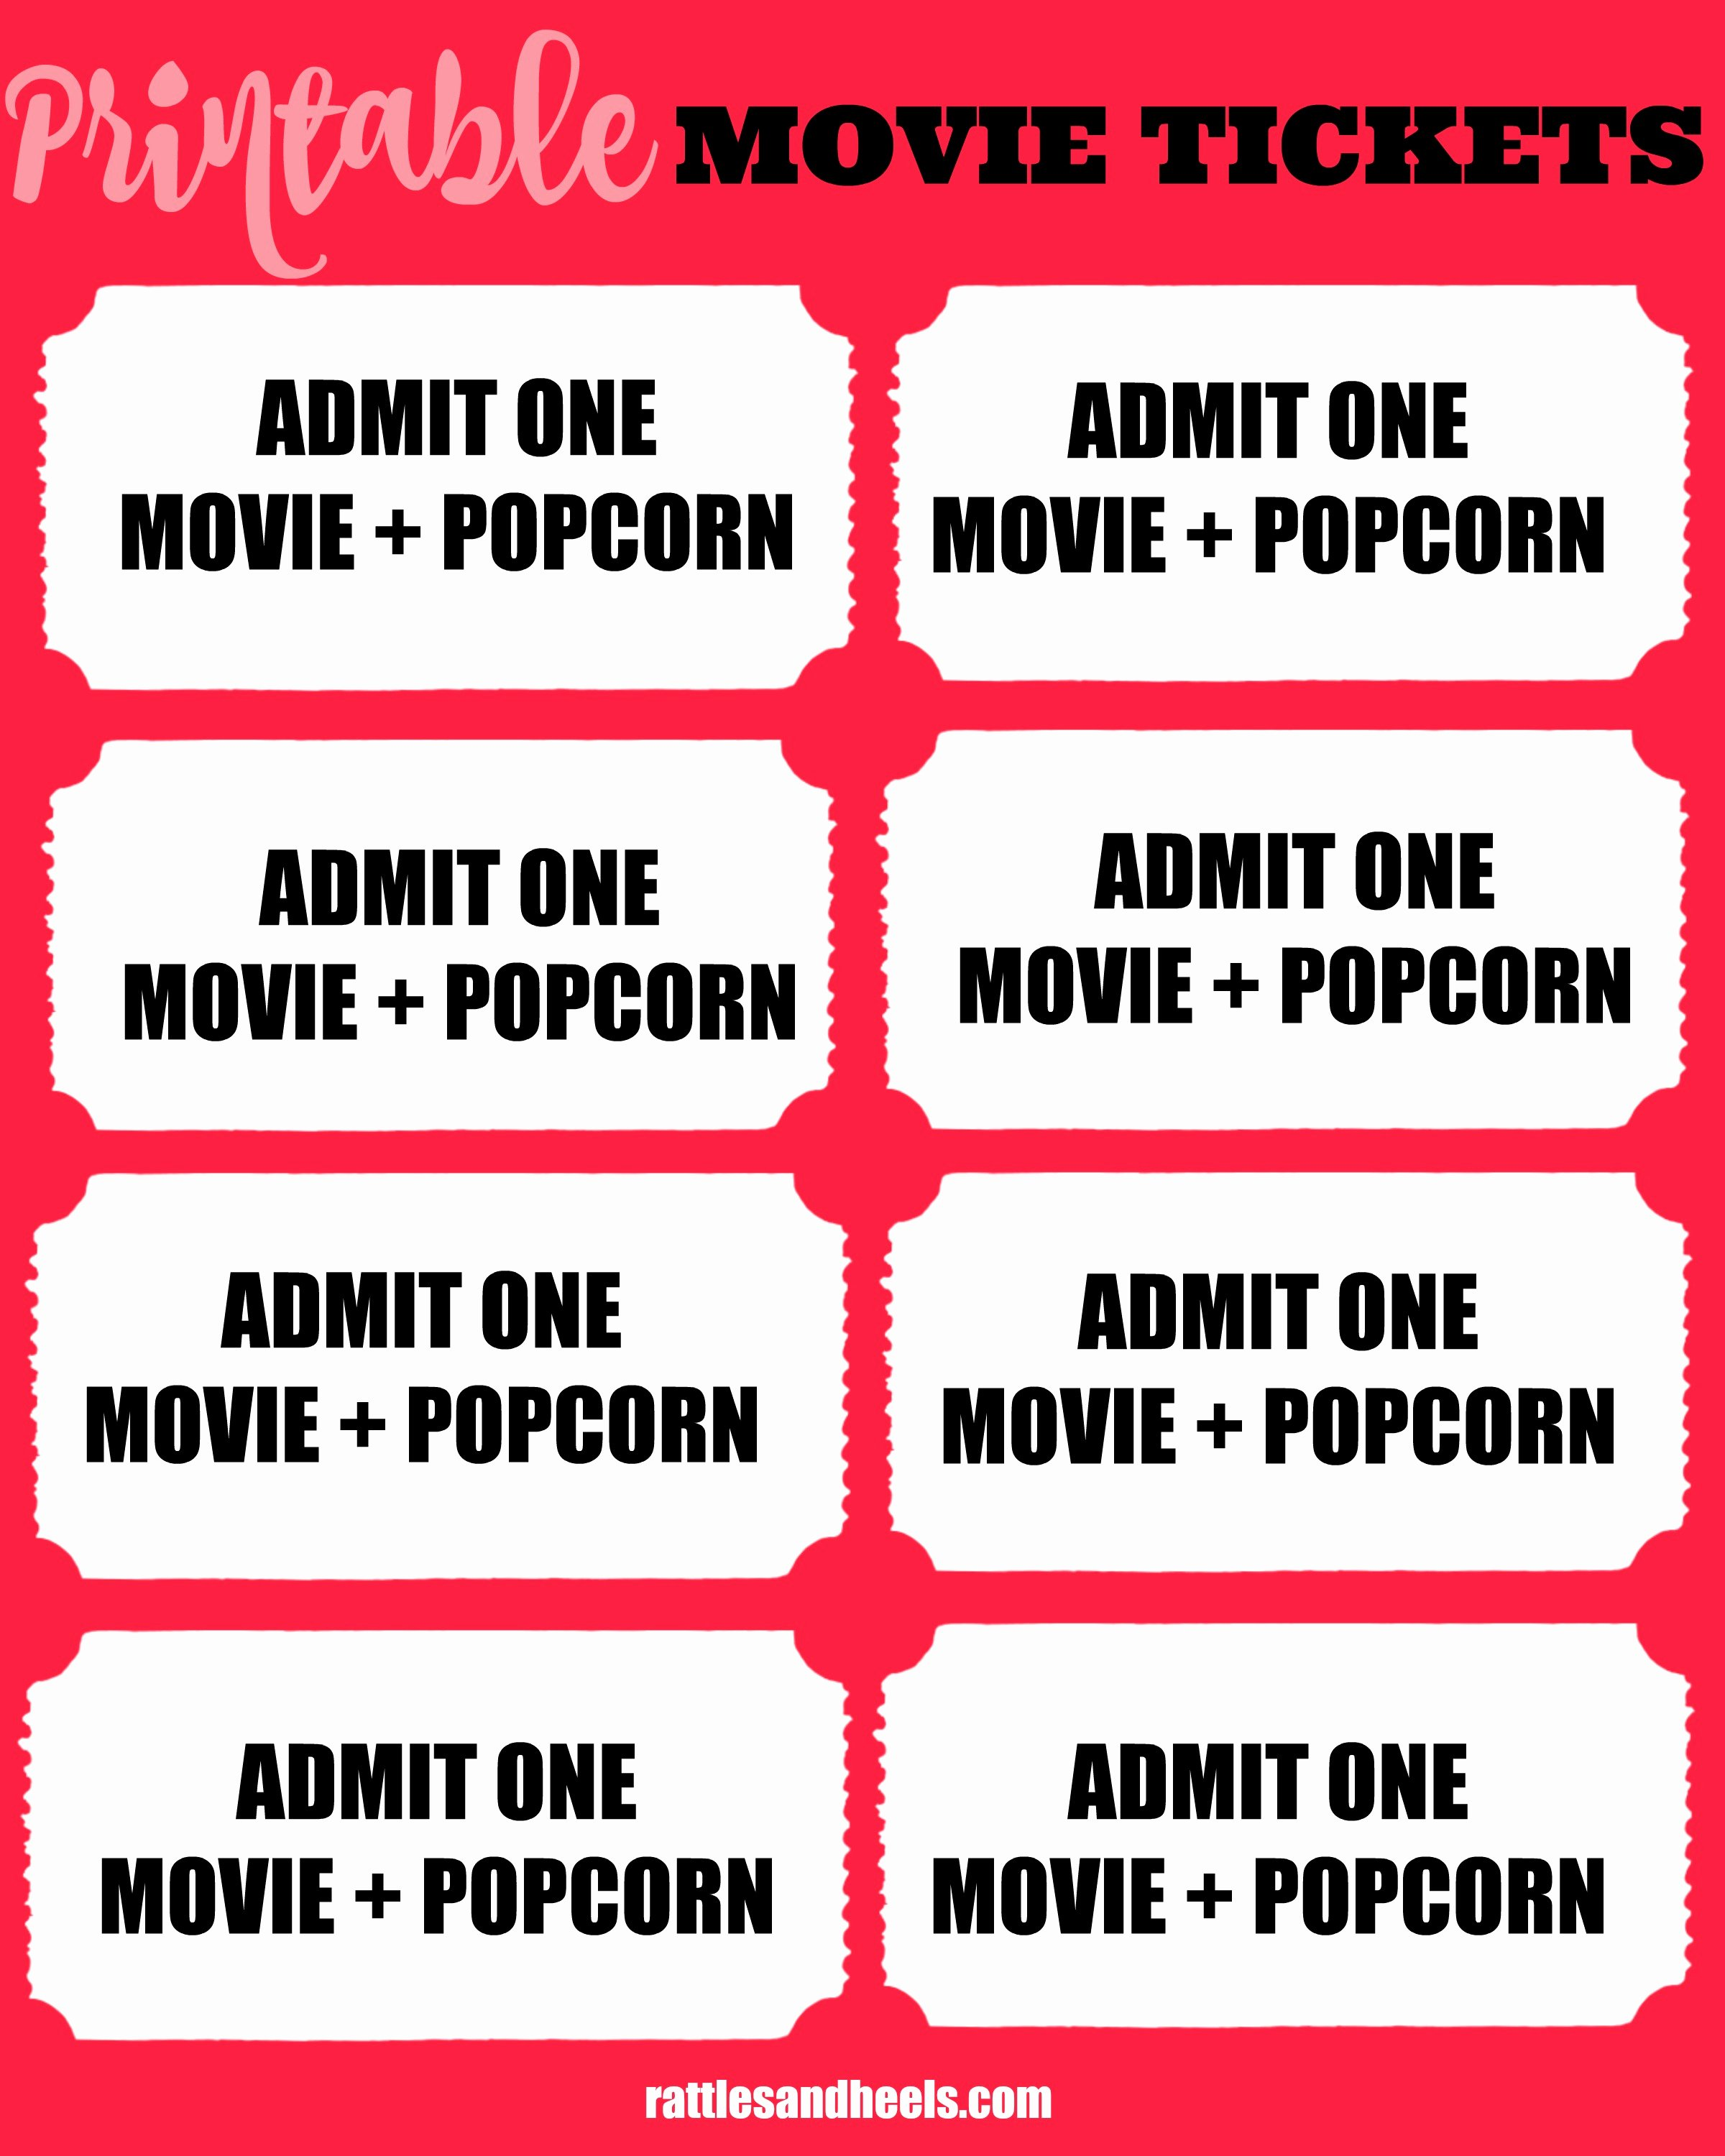 Printable Movie Tickets Template Fresh Family Movie Night with Printable Movie Tickets Giveaway